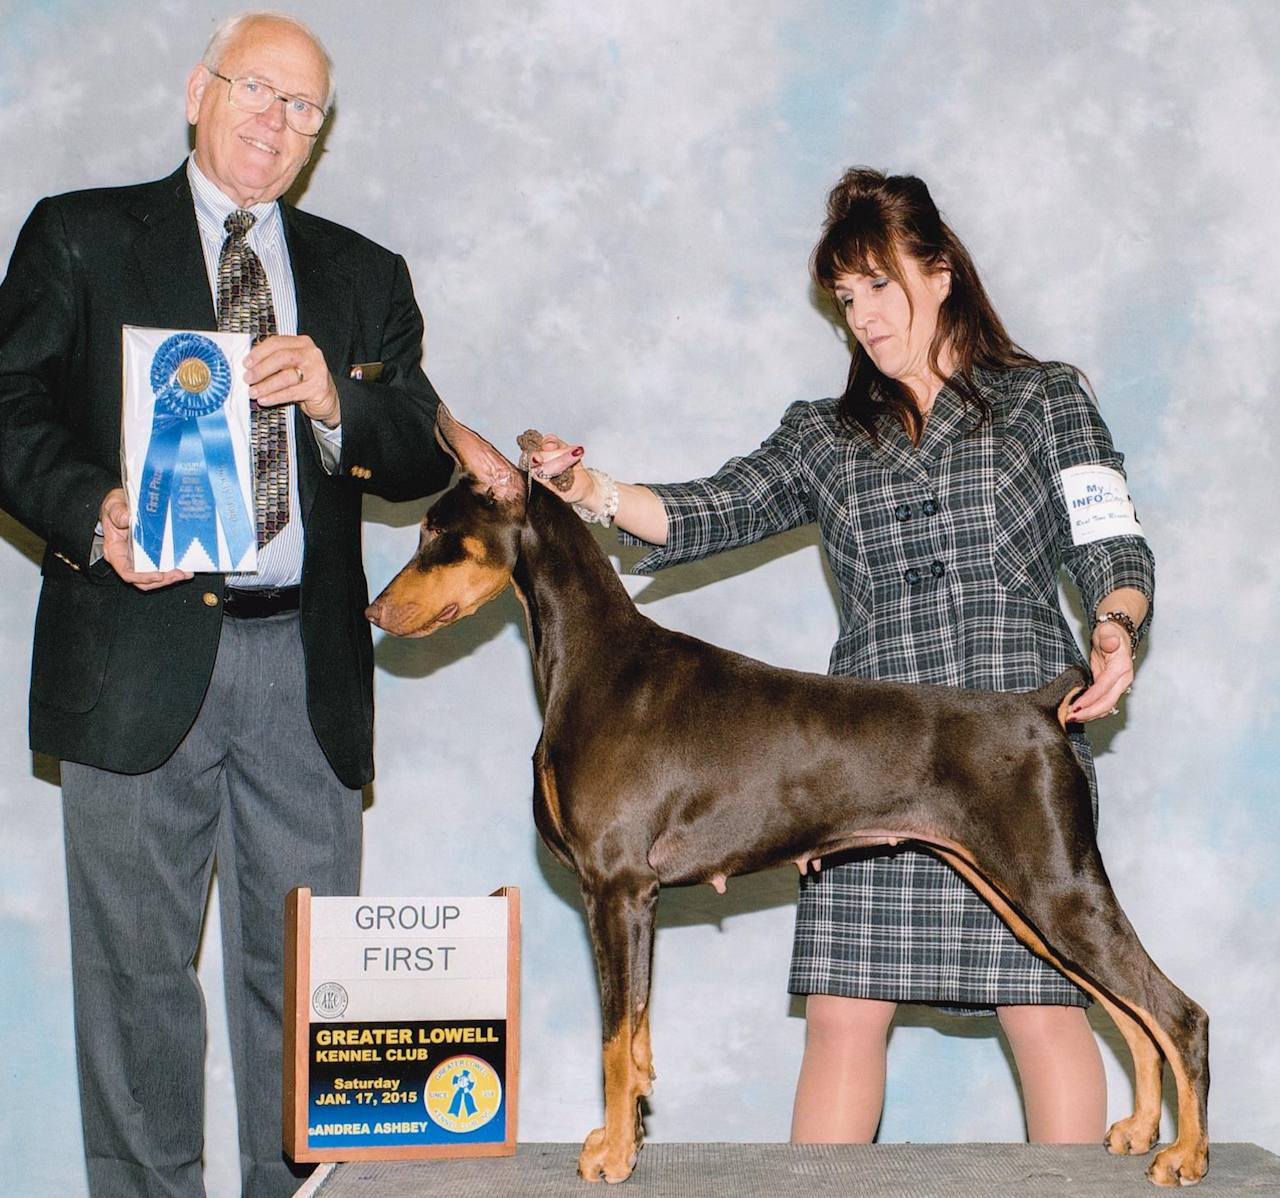 Top winning Dobermans from breeder of 10 generatonis